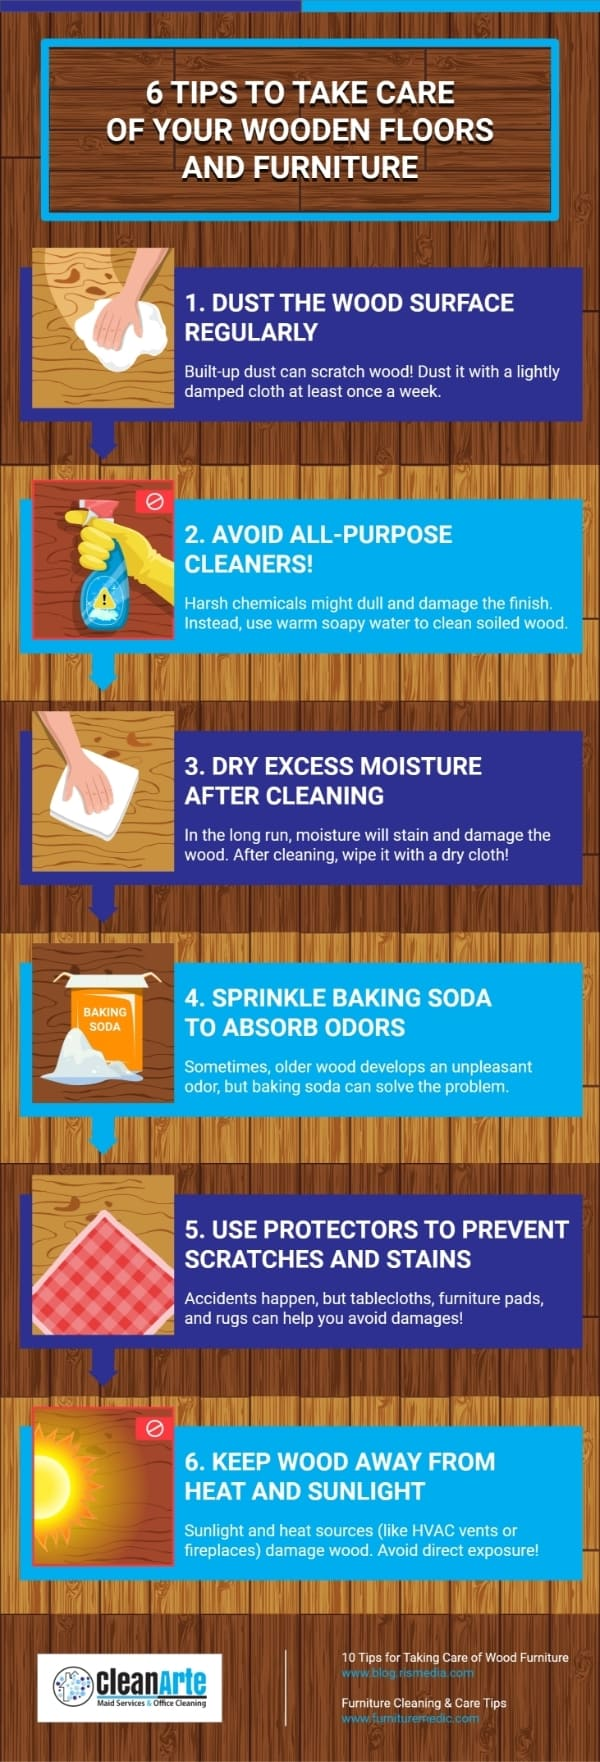 CleanArte Maid Services - 6 Tips To Take Care Of Your Wooden Floors And Furniture